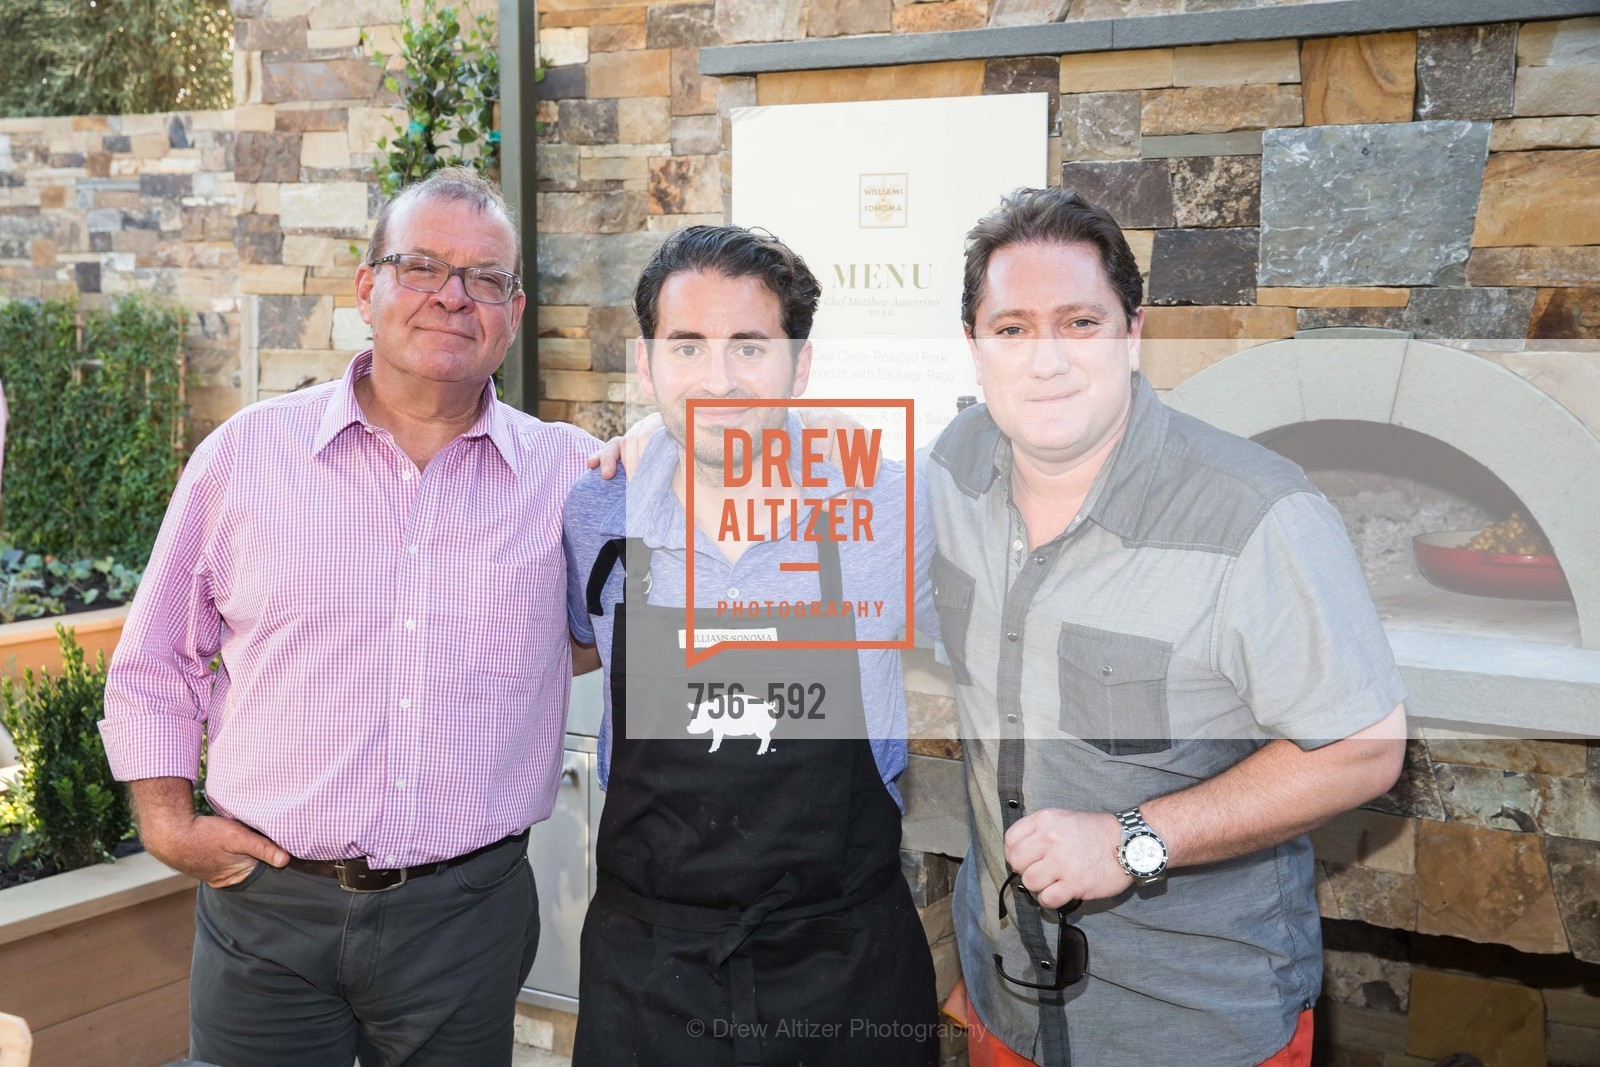 Matthew Accarino, Liam Mayclem, WILLIAMS-SONOMA Cochon BBQ Celebration, US, October 3rd, 2014,Drew Altizer, Drew Altizer Photography, full-service agency, private events, San Francisco photographer, photographer california